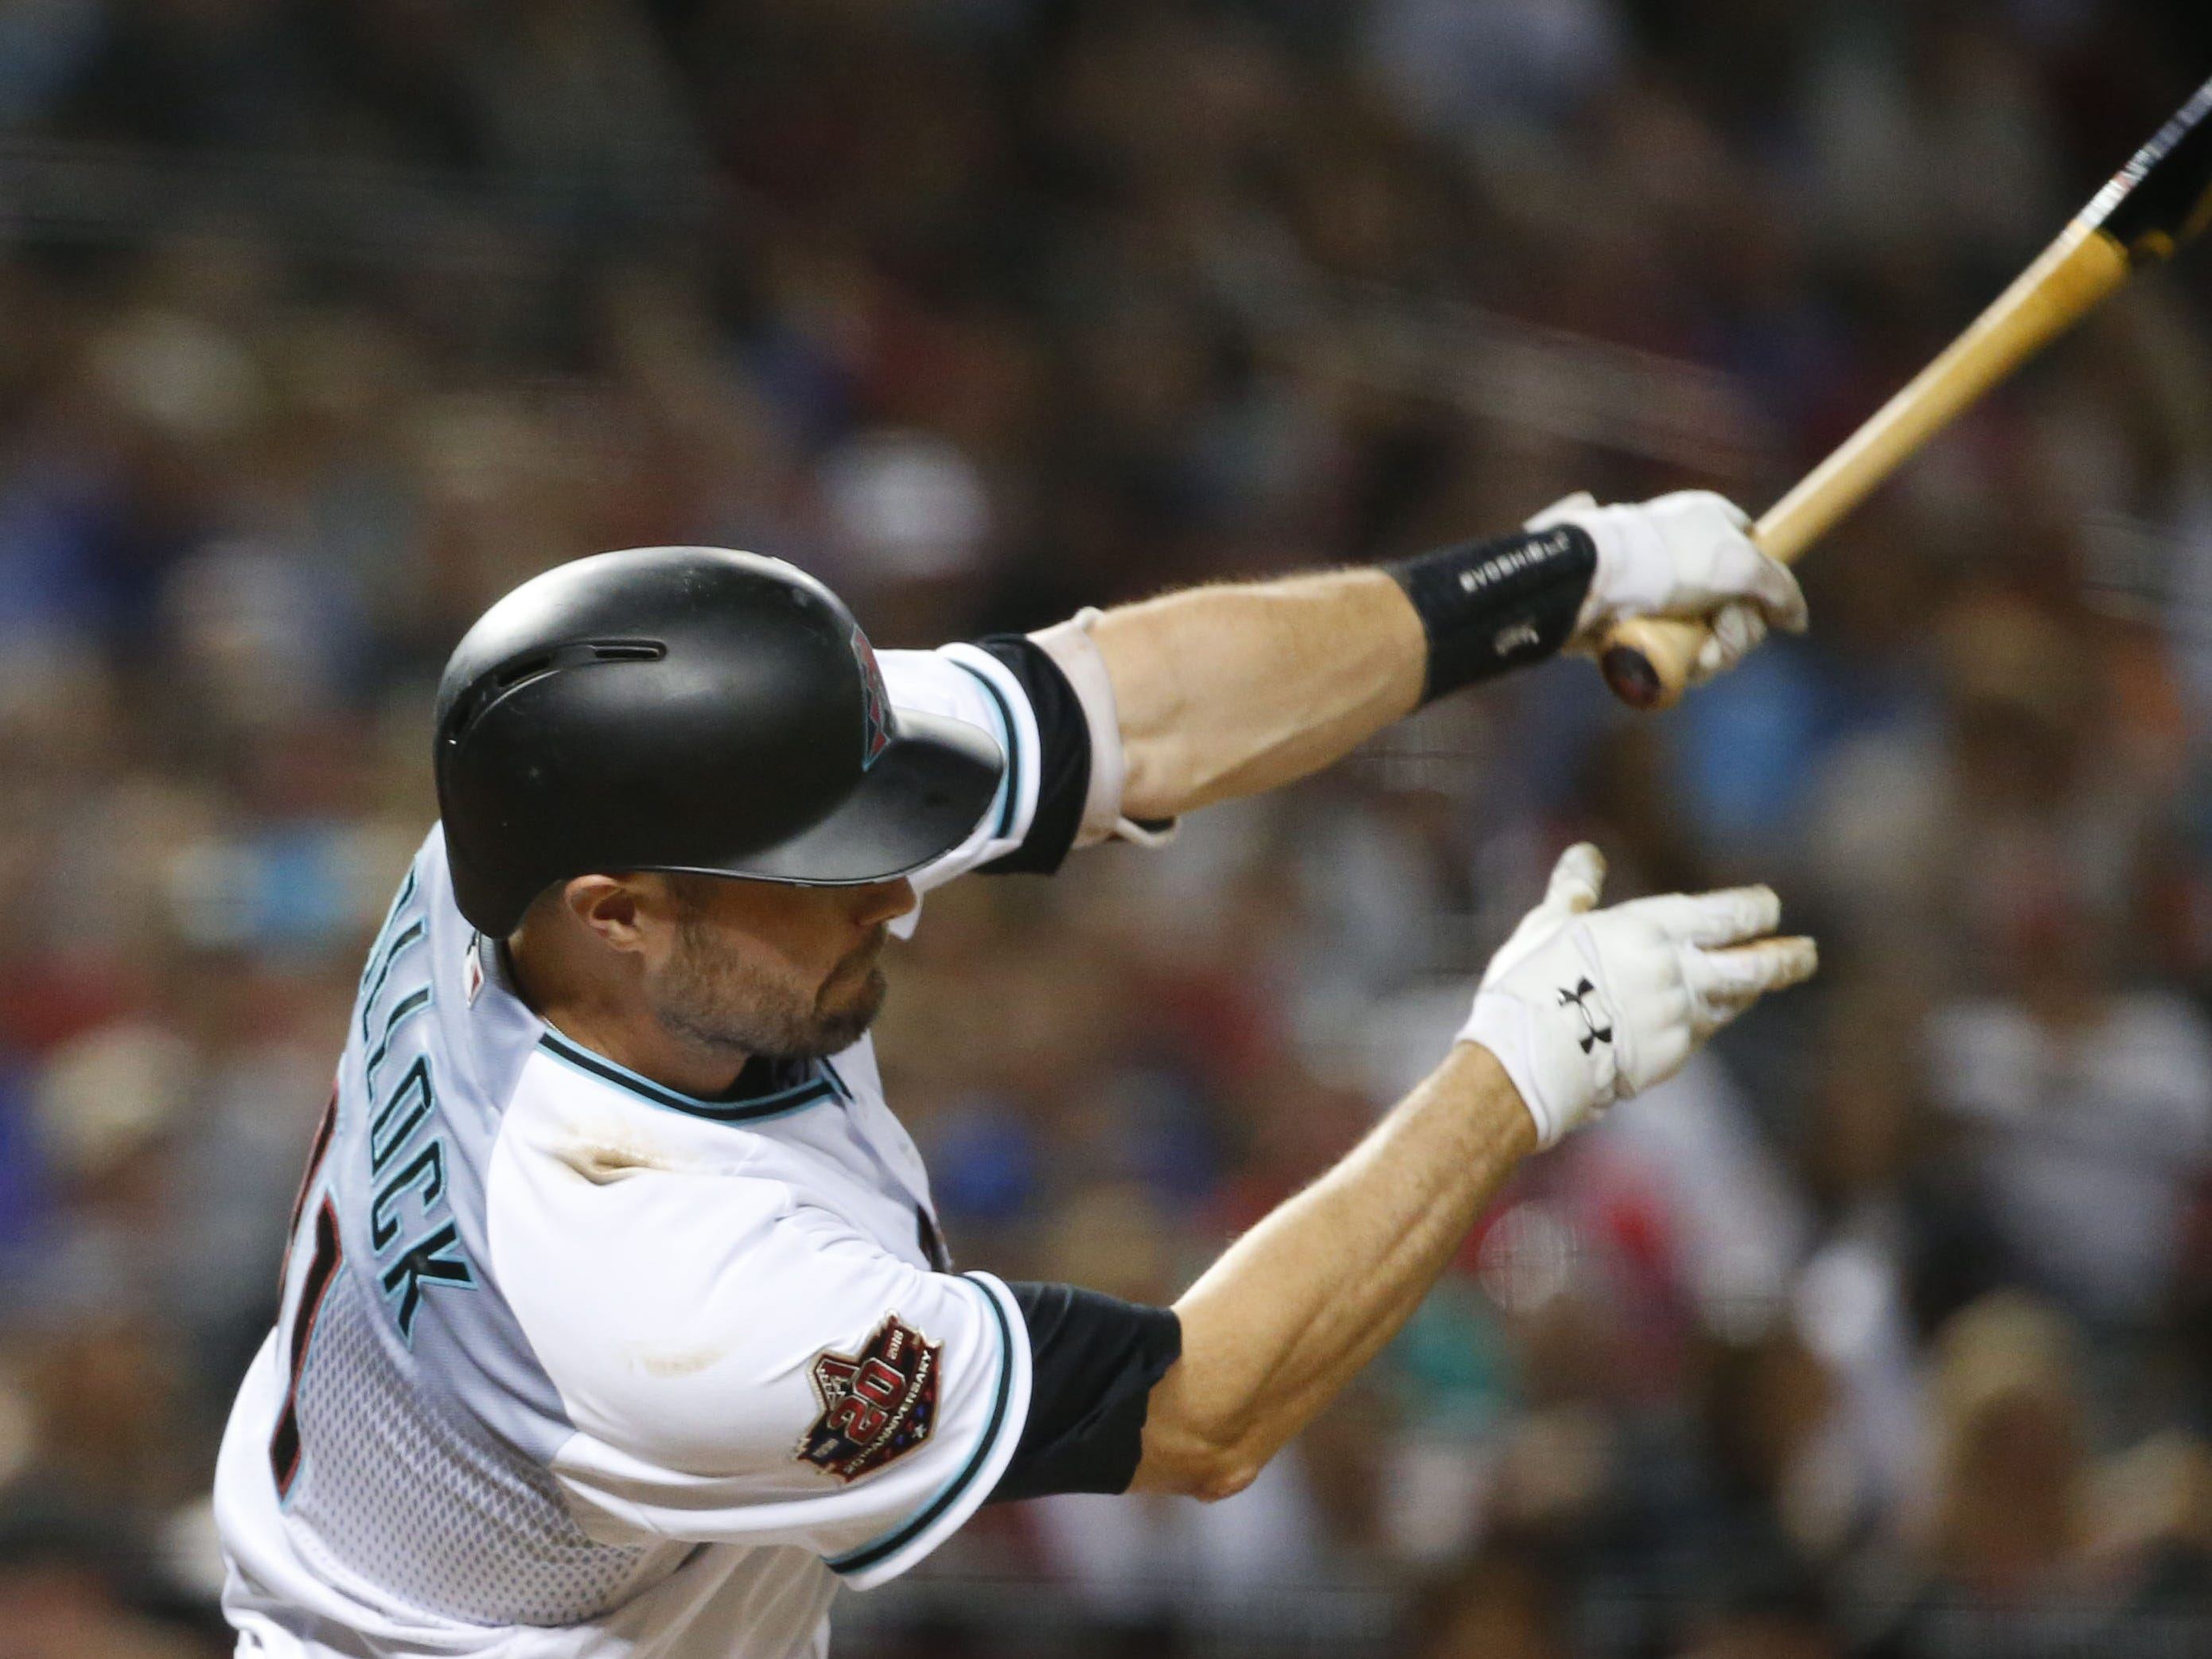 Arizona Diamondbacks center fielder A.J. Pollock (11) foul tips a ball during a MLB game against the Atlanta Braves at Chase Field in Phoenix on September 7, 2018.